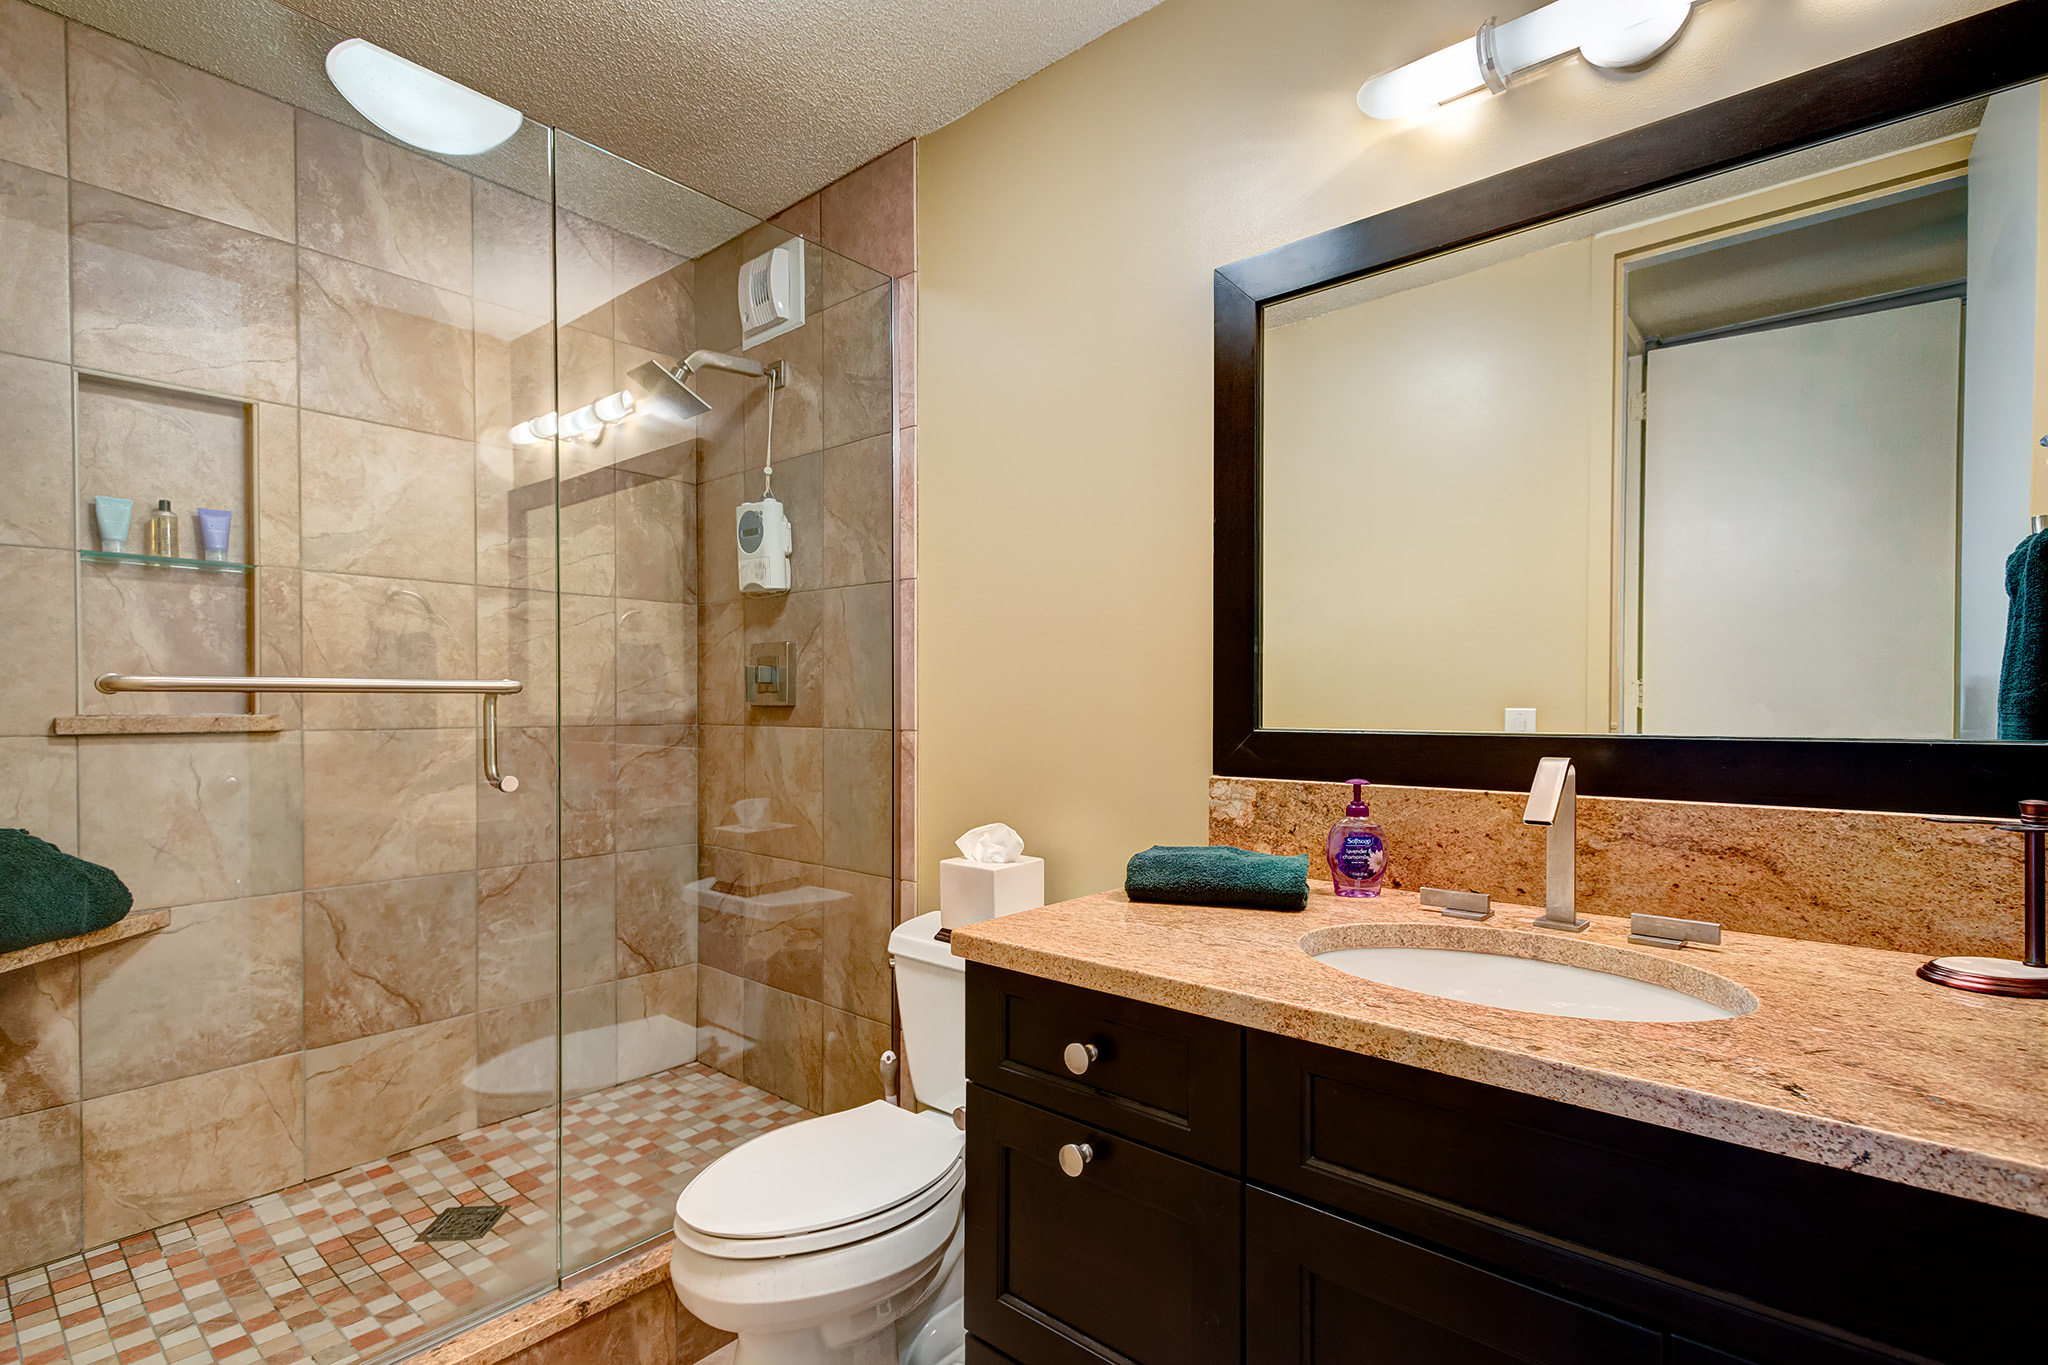 Chicago Bathroom Remodeling Bathroom Renovation Project Chicago Il  Michael Menn Ltd .